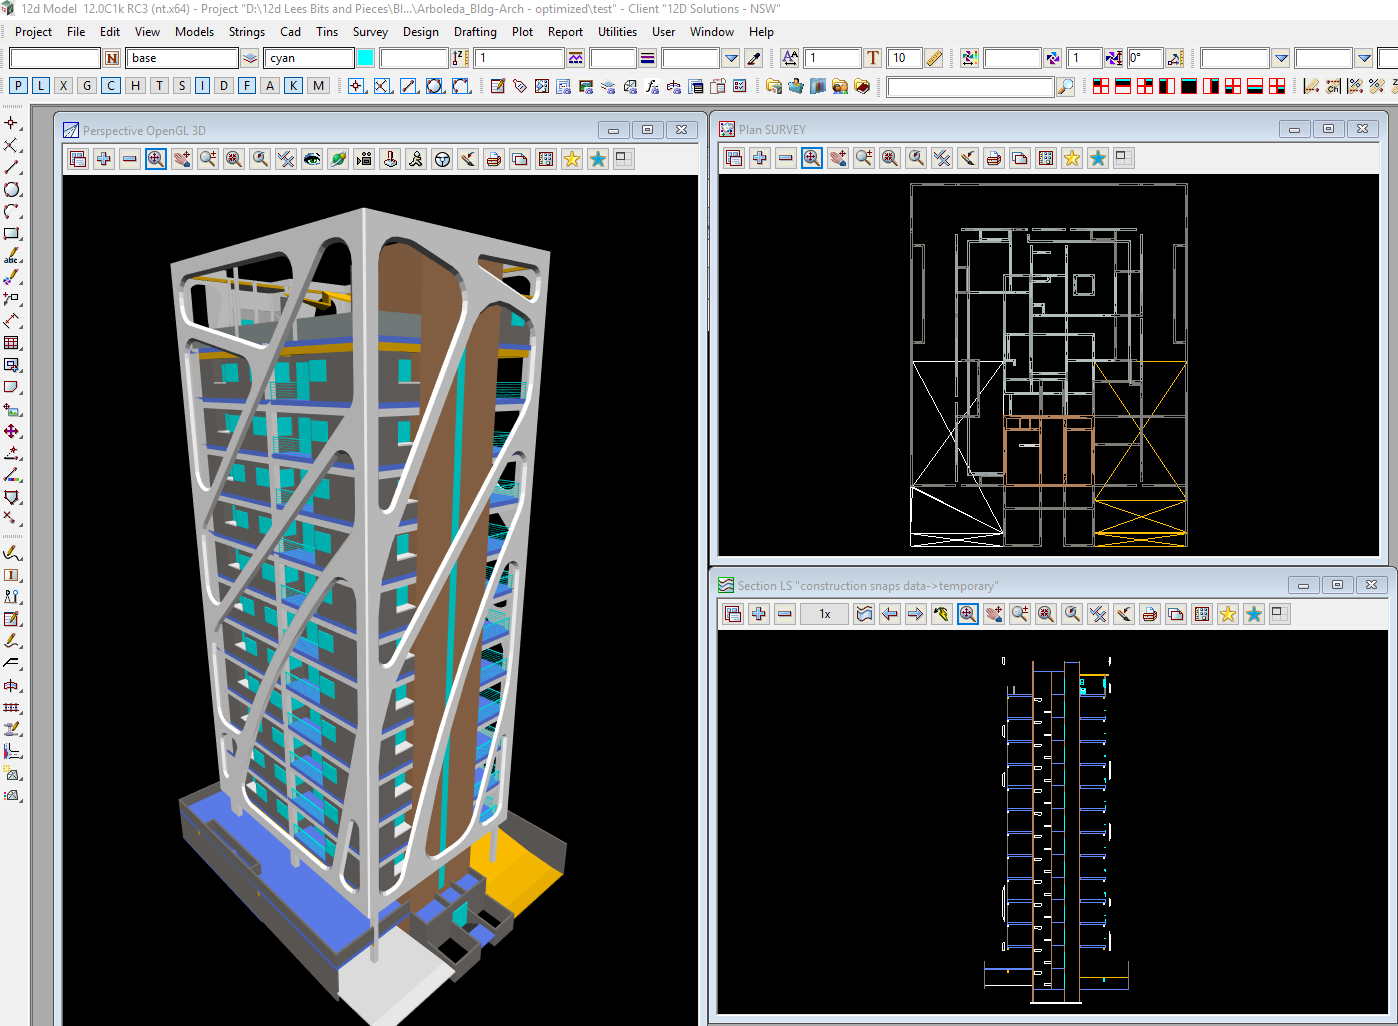 Data loaded into 12d Model from ArchiCAD IFC files